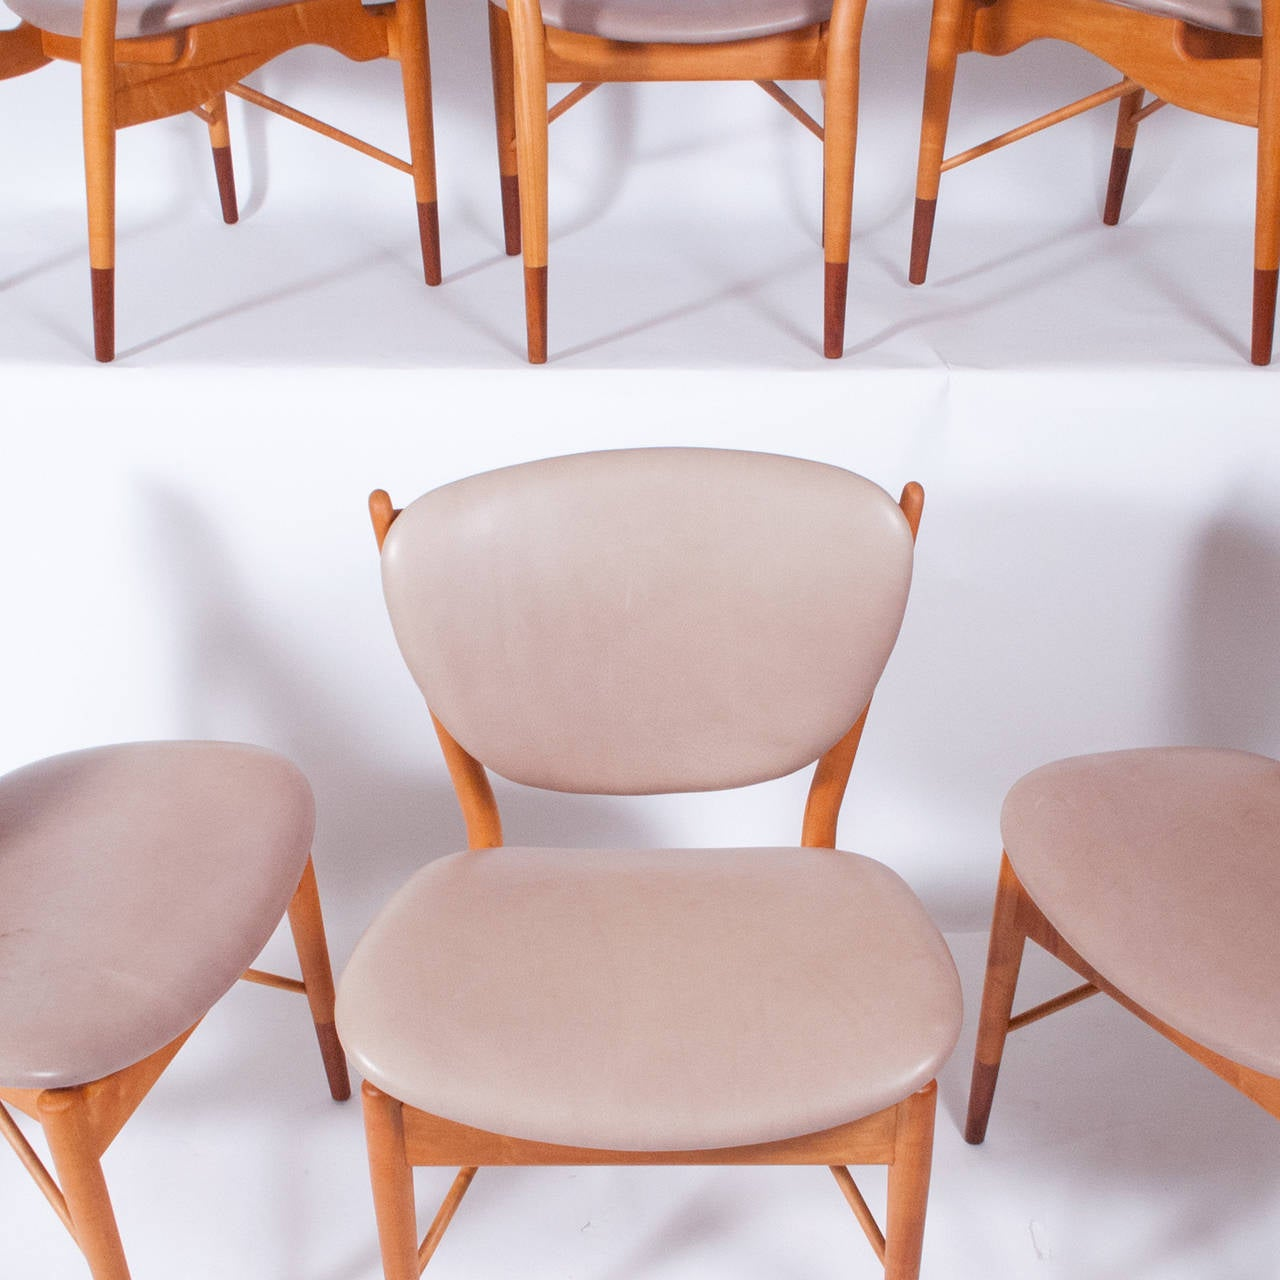 Six side chairs, floating back and seat with two support stretchers. Sycamore and Italian walnut with previously reupholstered seat and back in light gray leather . A Fine example of Finn Juhl's organic design. Made by Baker.